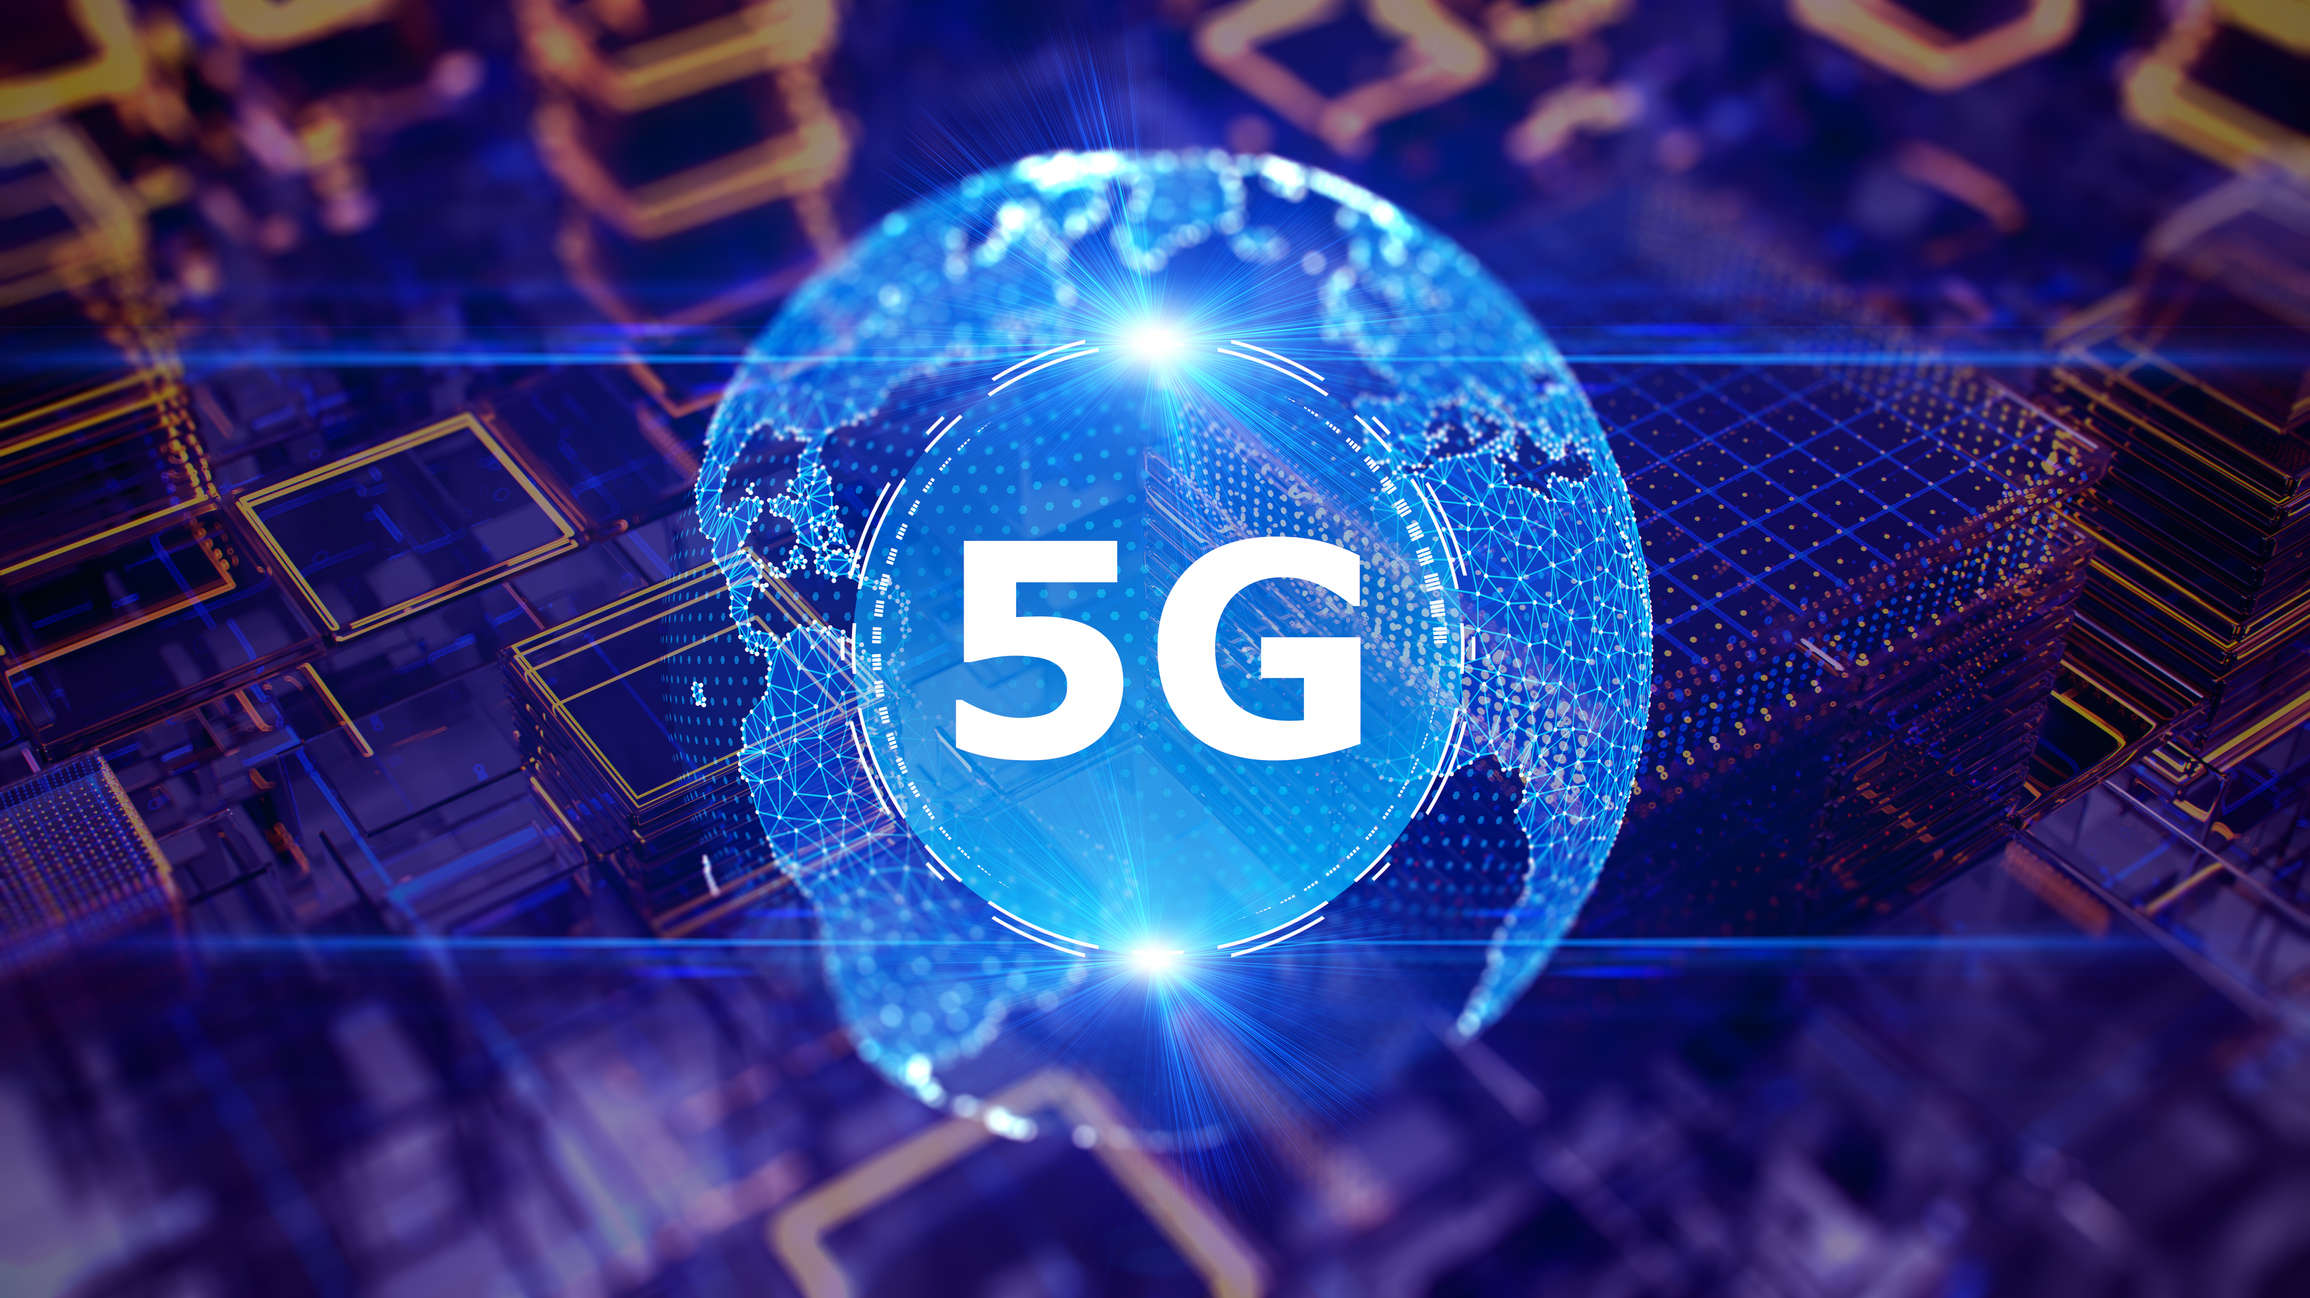 bharti airtel: DoT to ask telcos to test 5G in rural areas also, MTNL may  join trial soon, Telecom News, ET Telecom